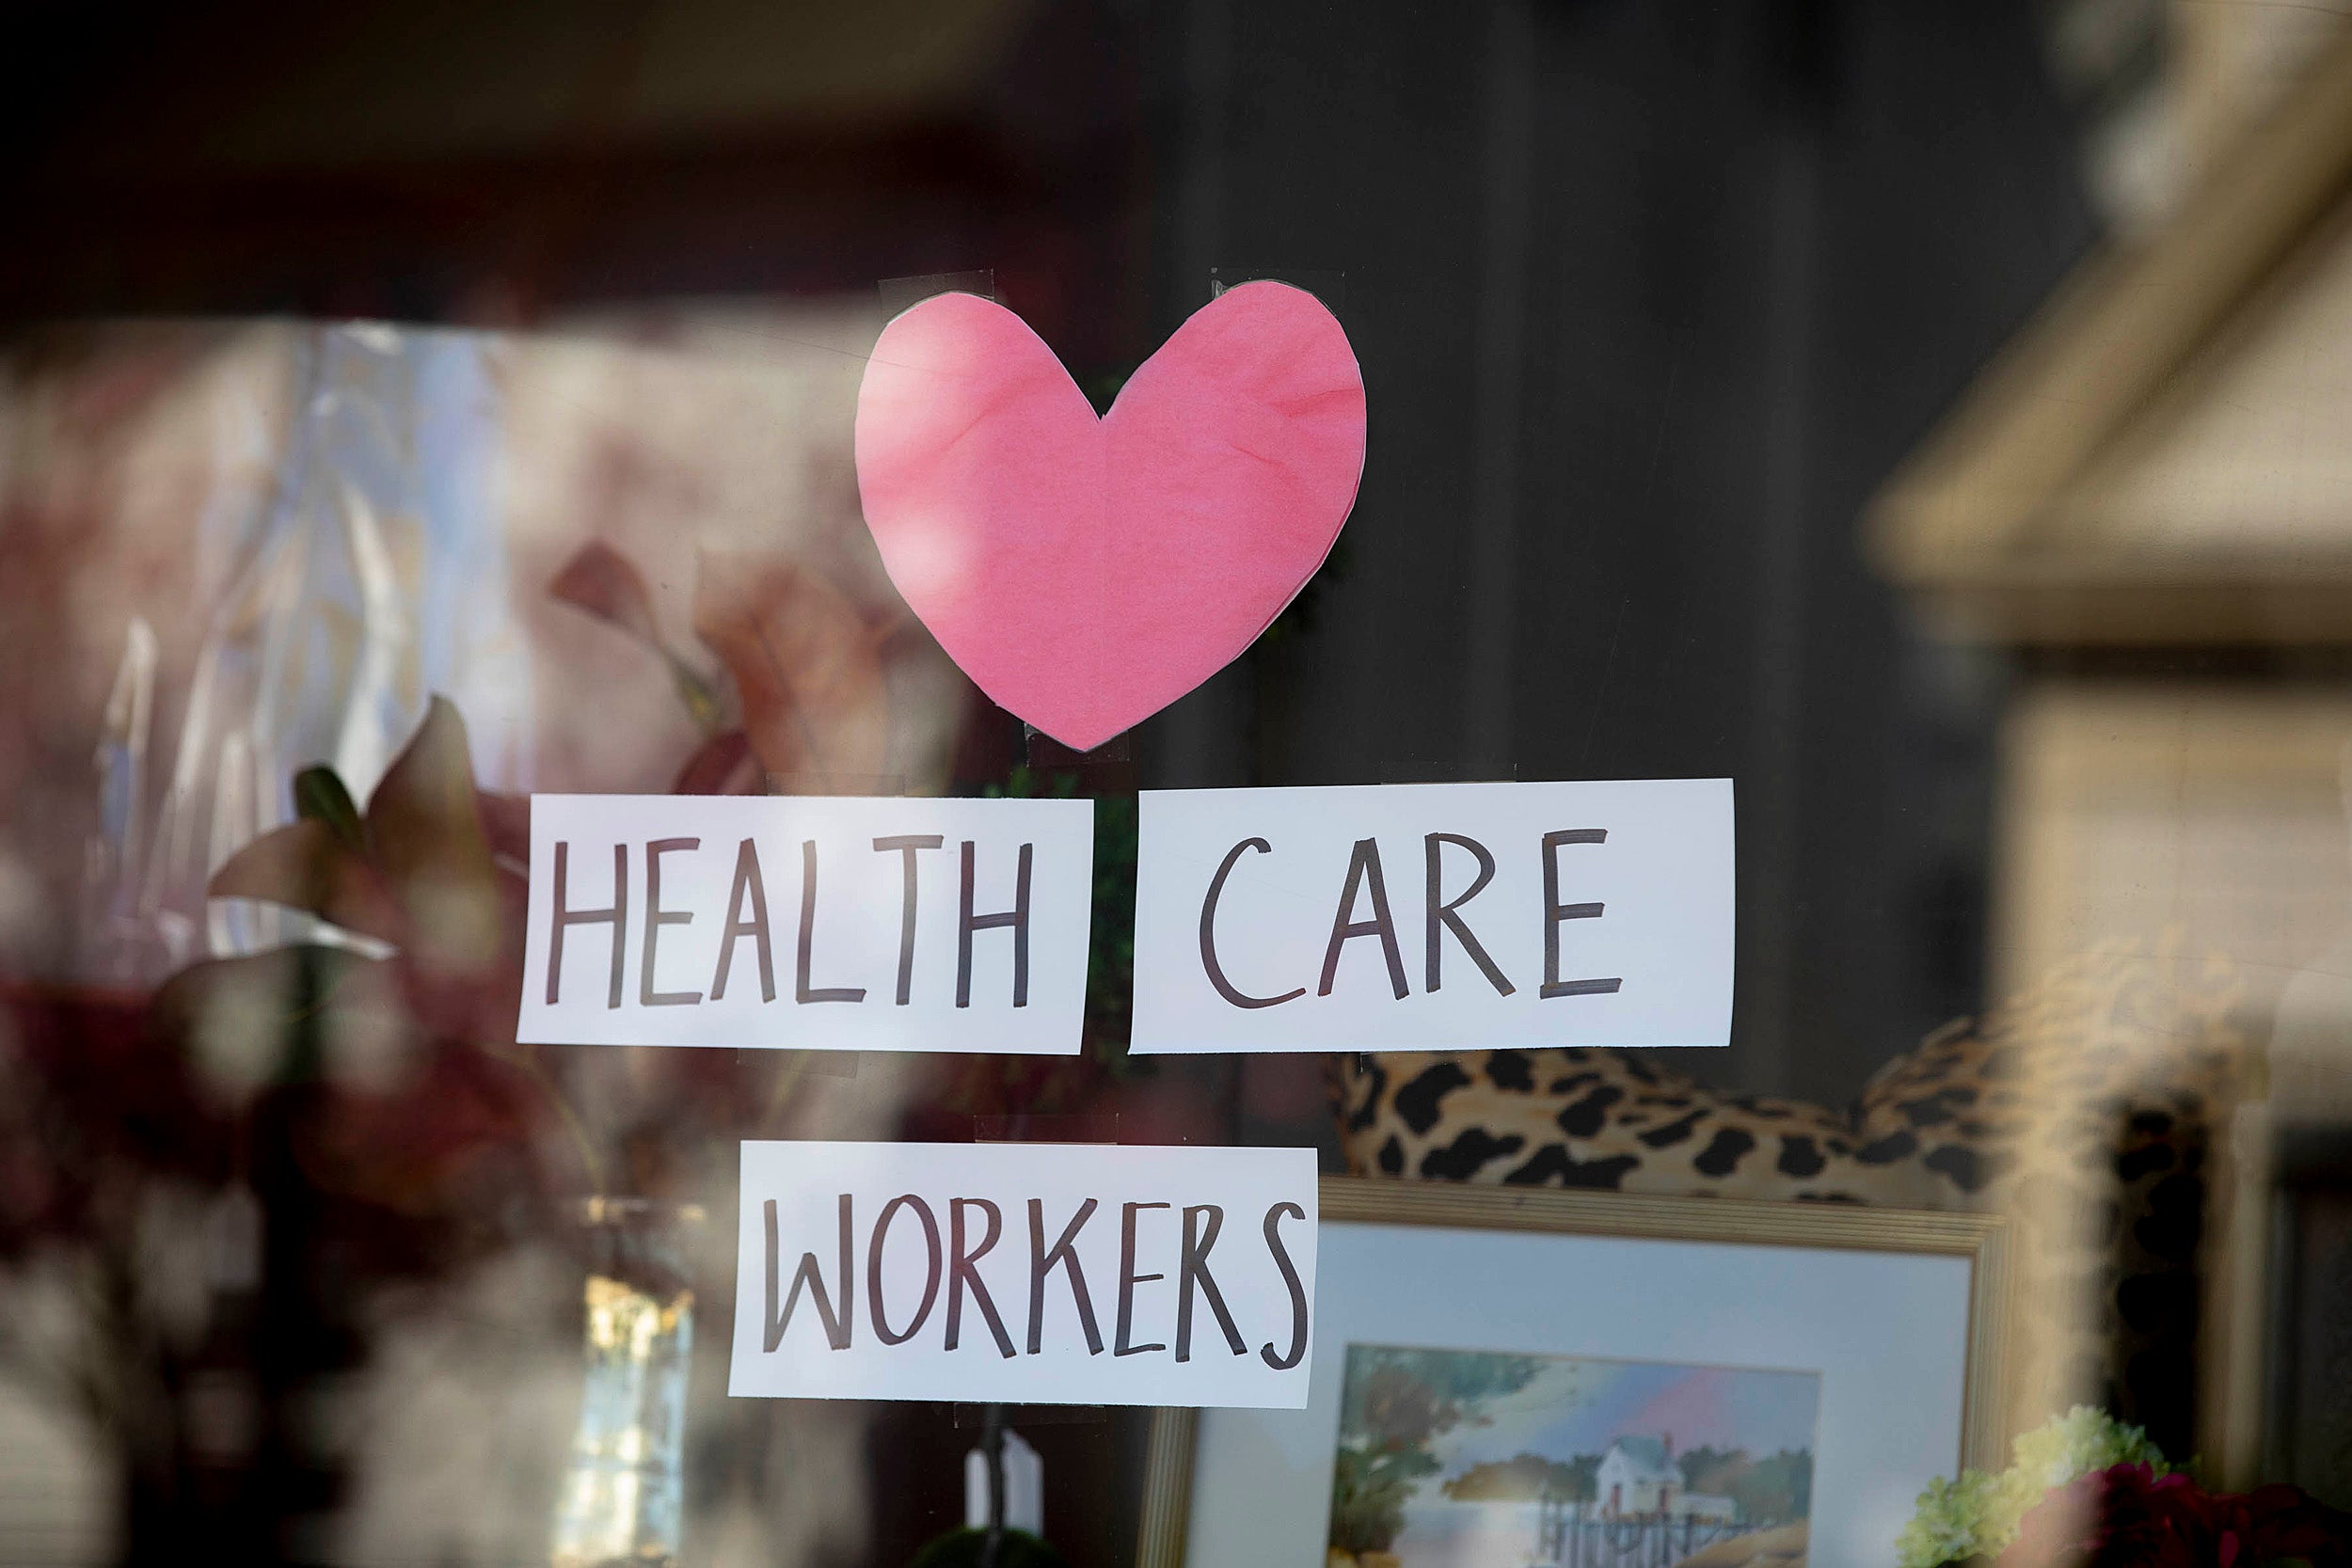 Thank you sign for health care workers in a window.